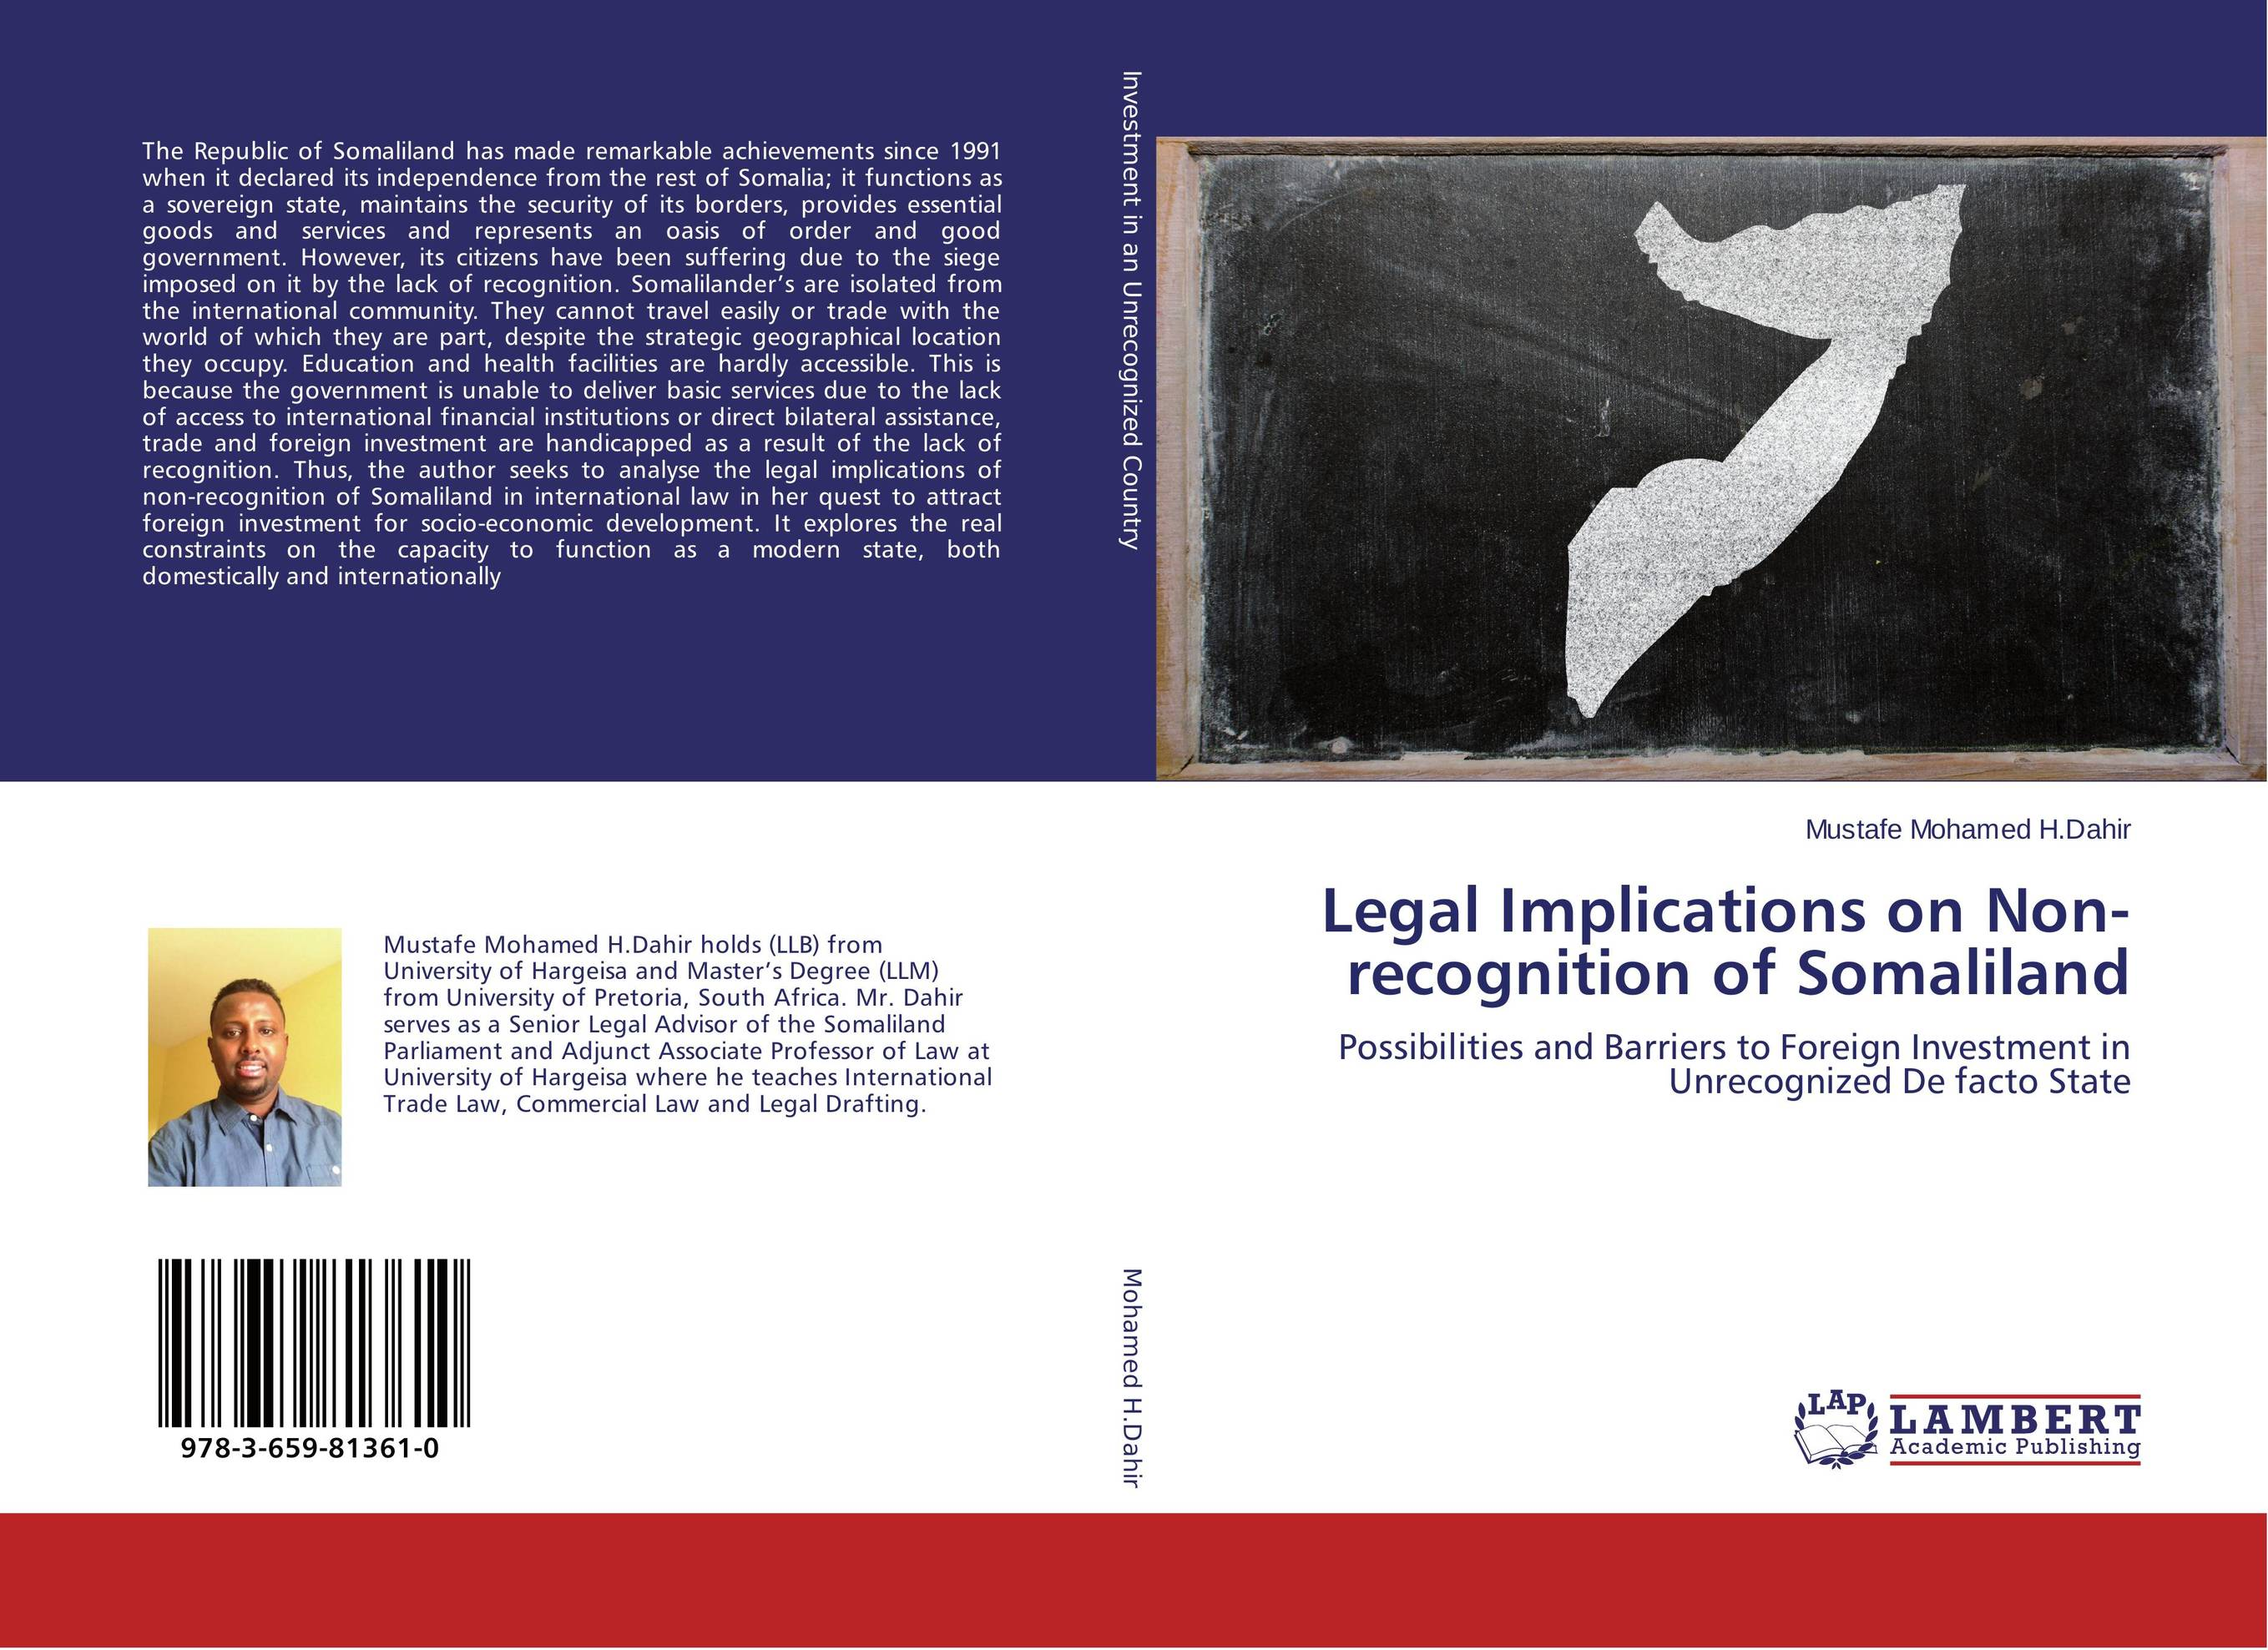 Legal Implications on Non-recognition of Somaliland seeing things as they are